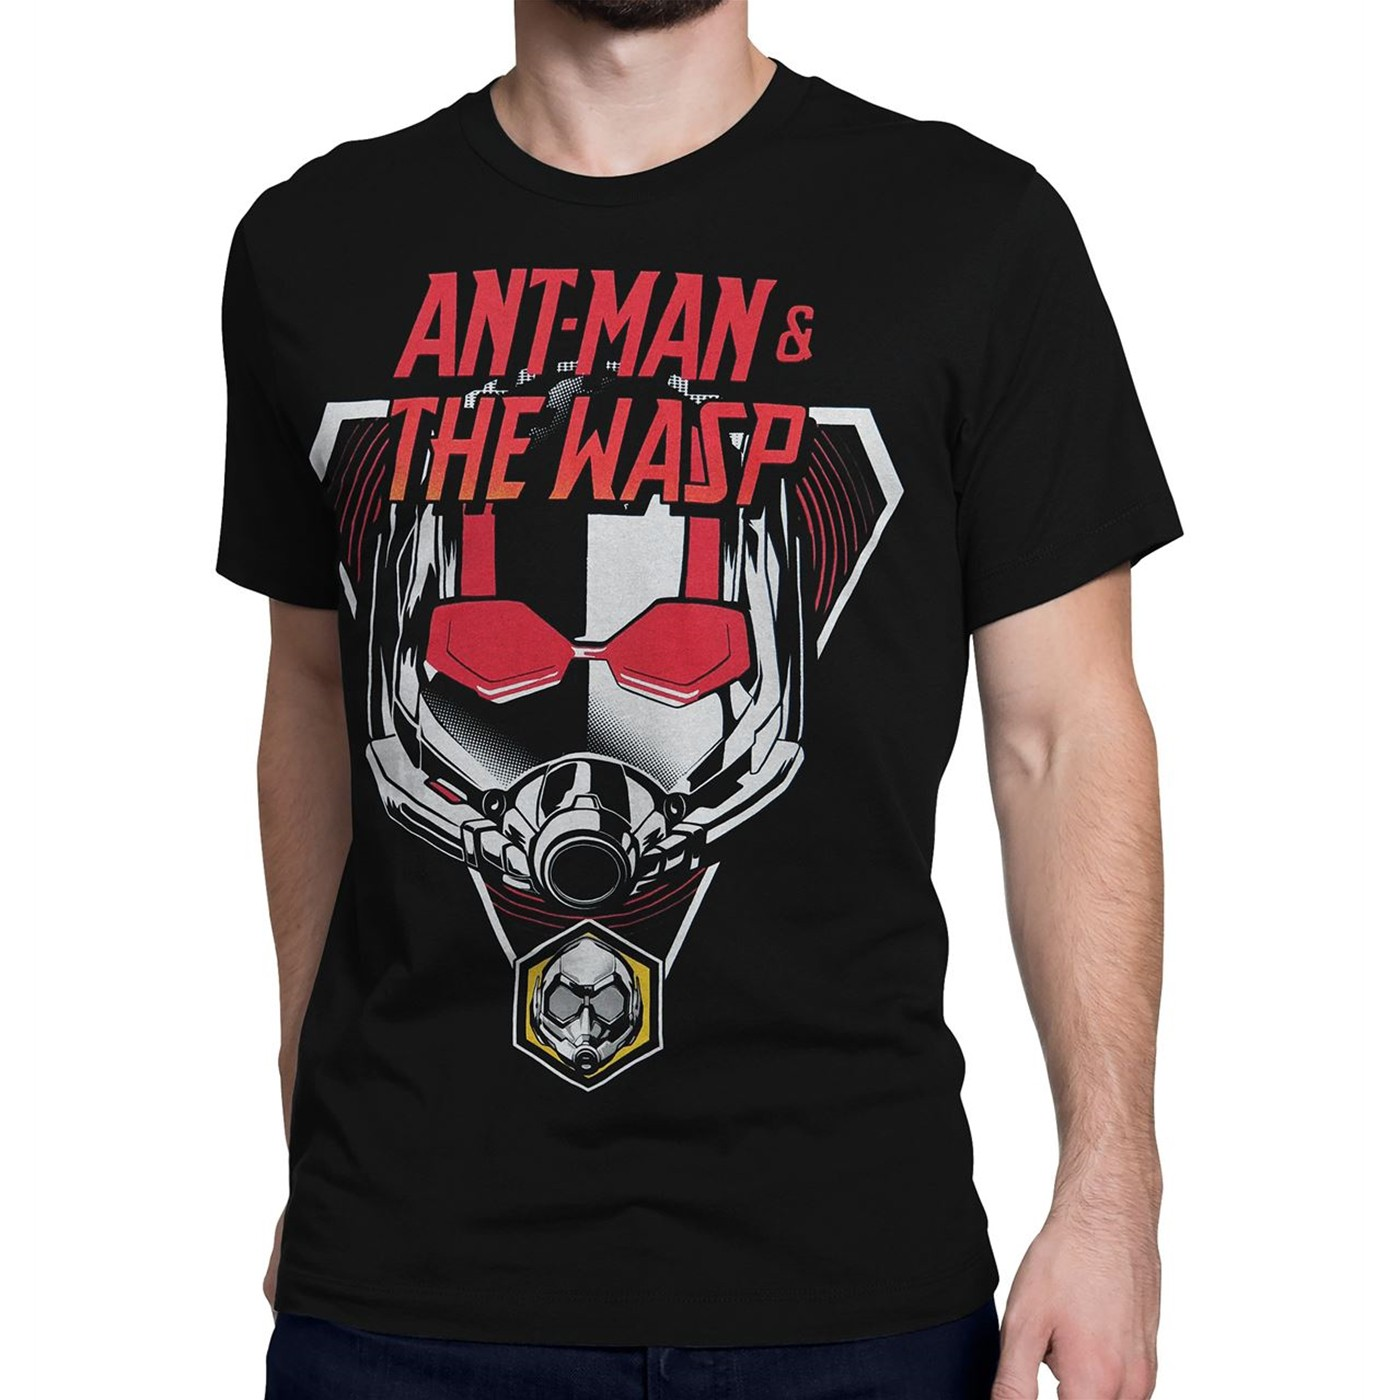 Ant-Man & The Wasp Men's T-Shirt